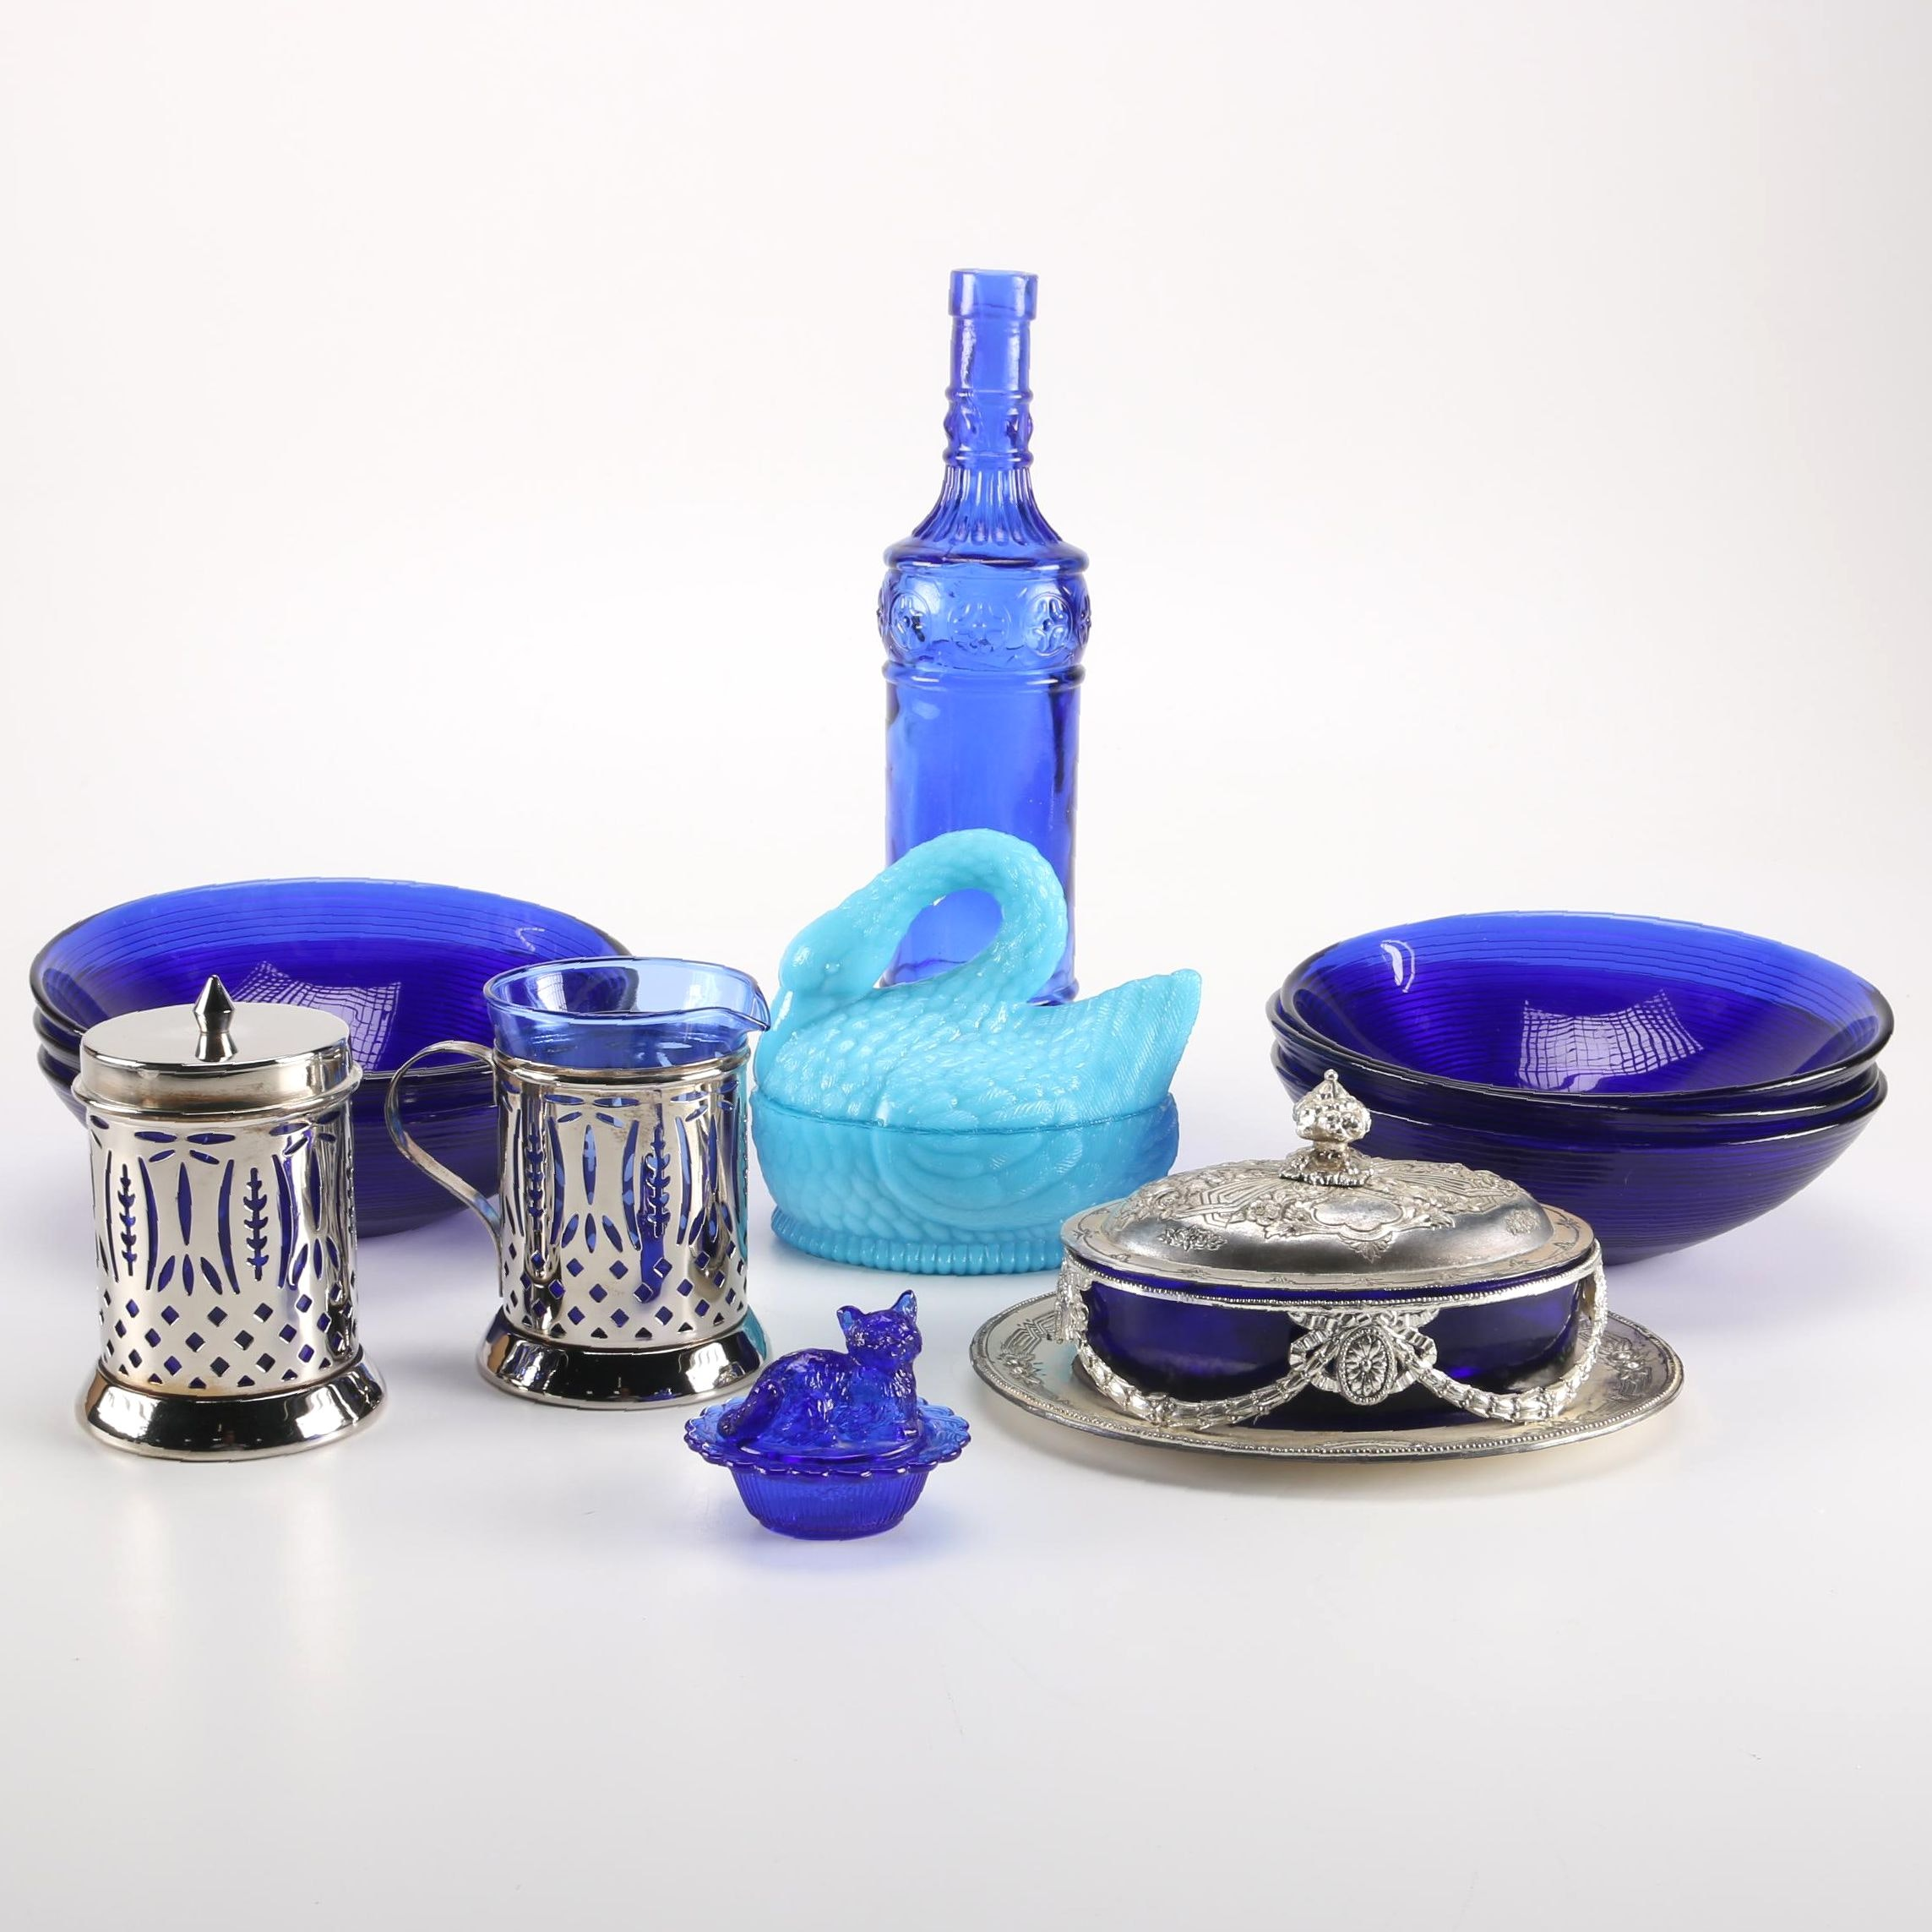 Colored Glass Decor and Tableware